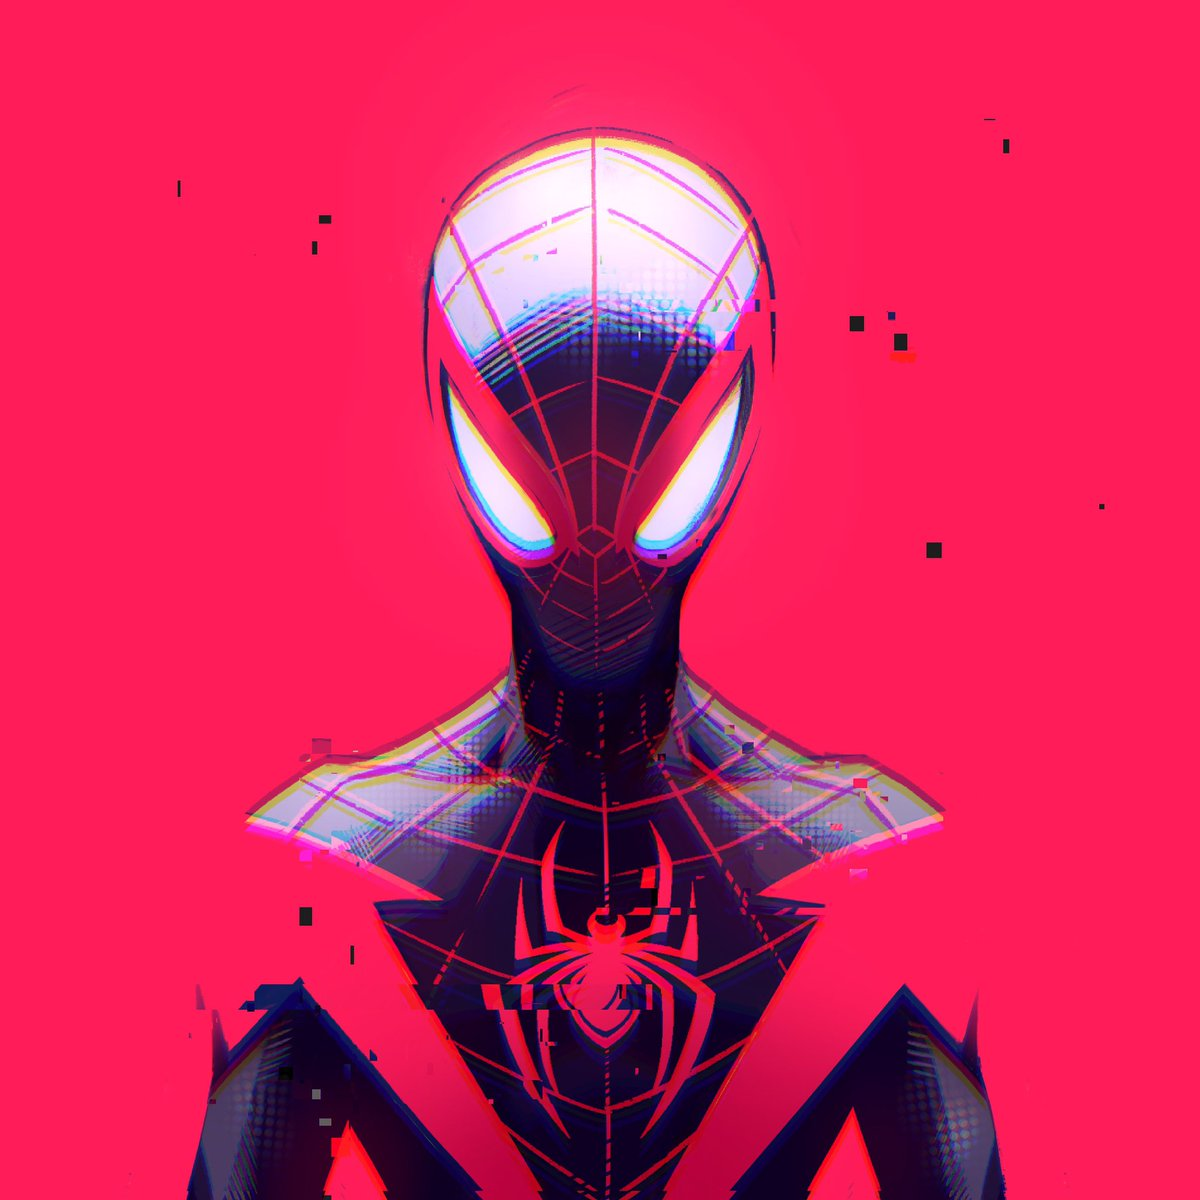 A glitch in my usual style.  I've been experimenting a lot recently. Deal with it 🙅🏻♂️  #MilesMorales #spiderman #PlayStation5 #procreate